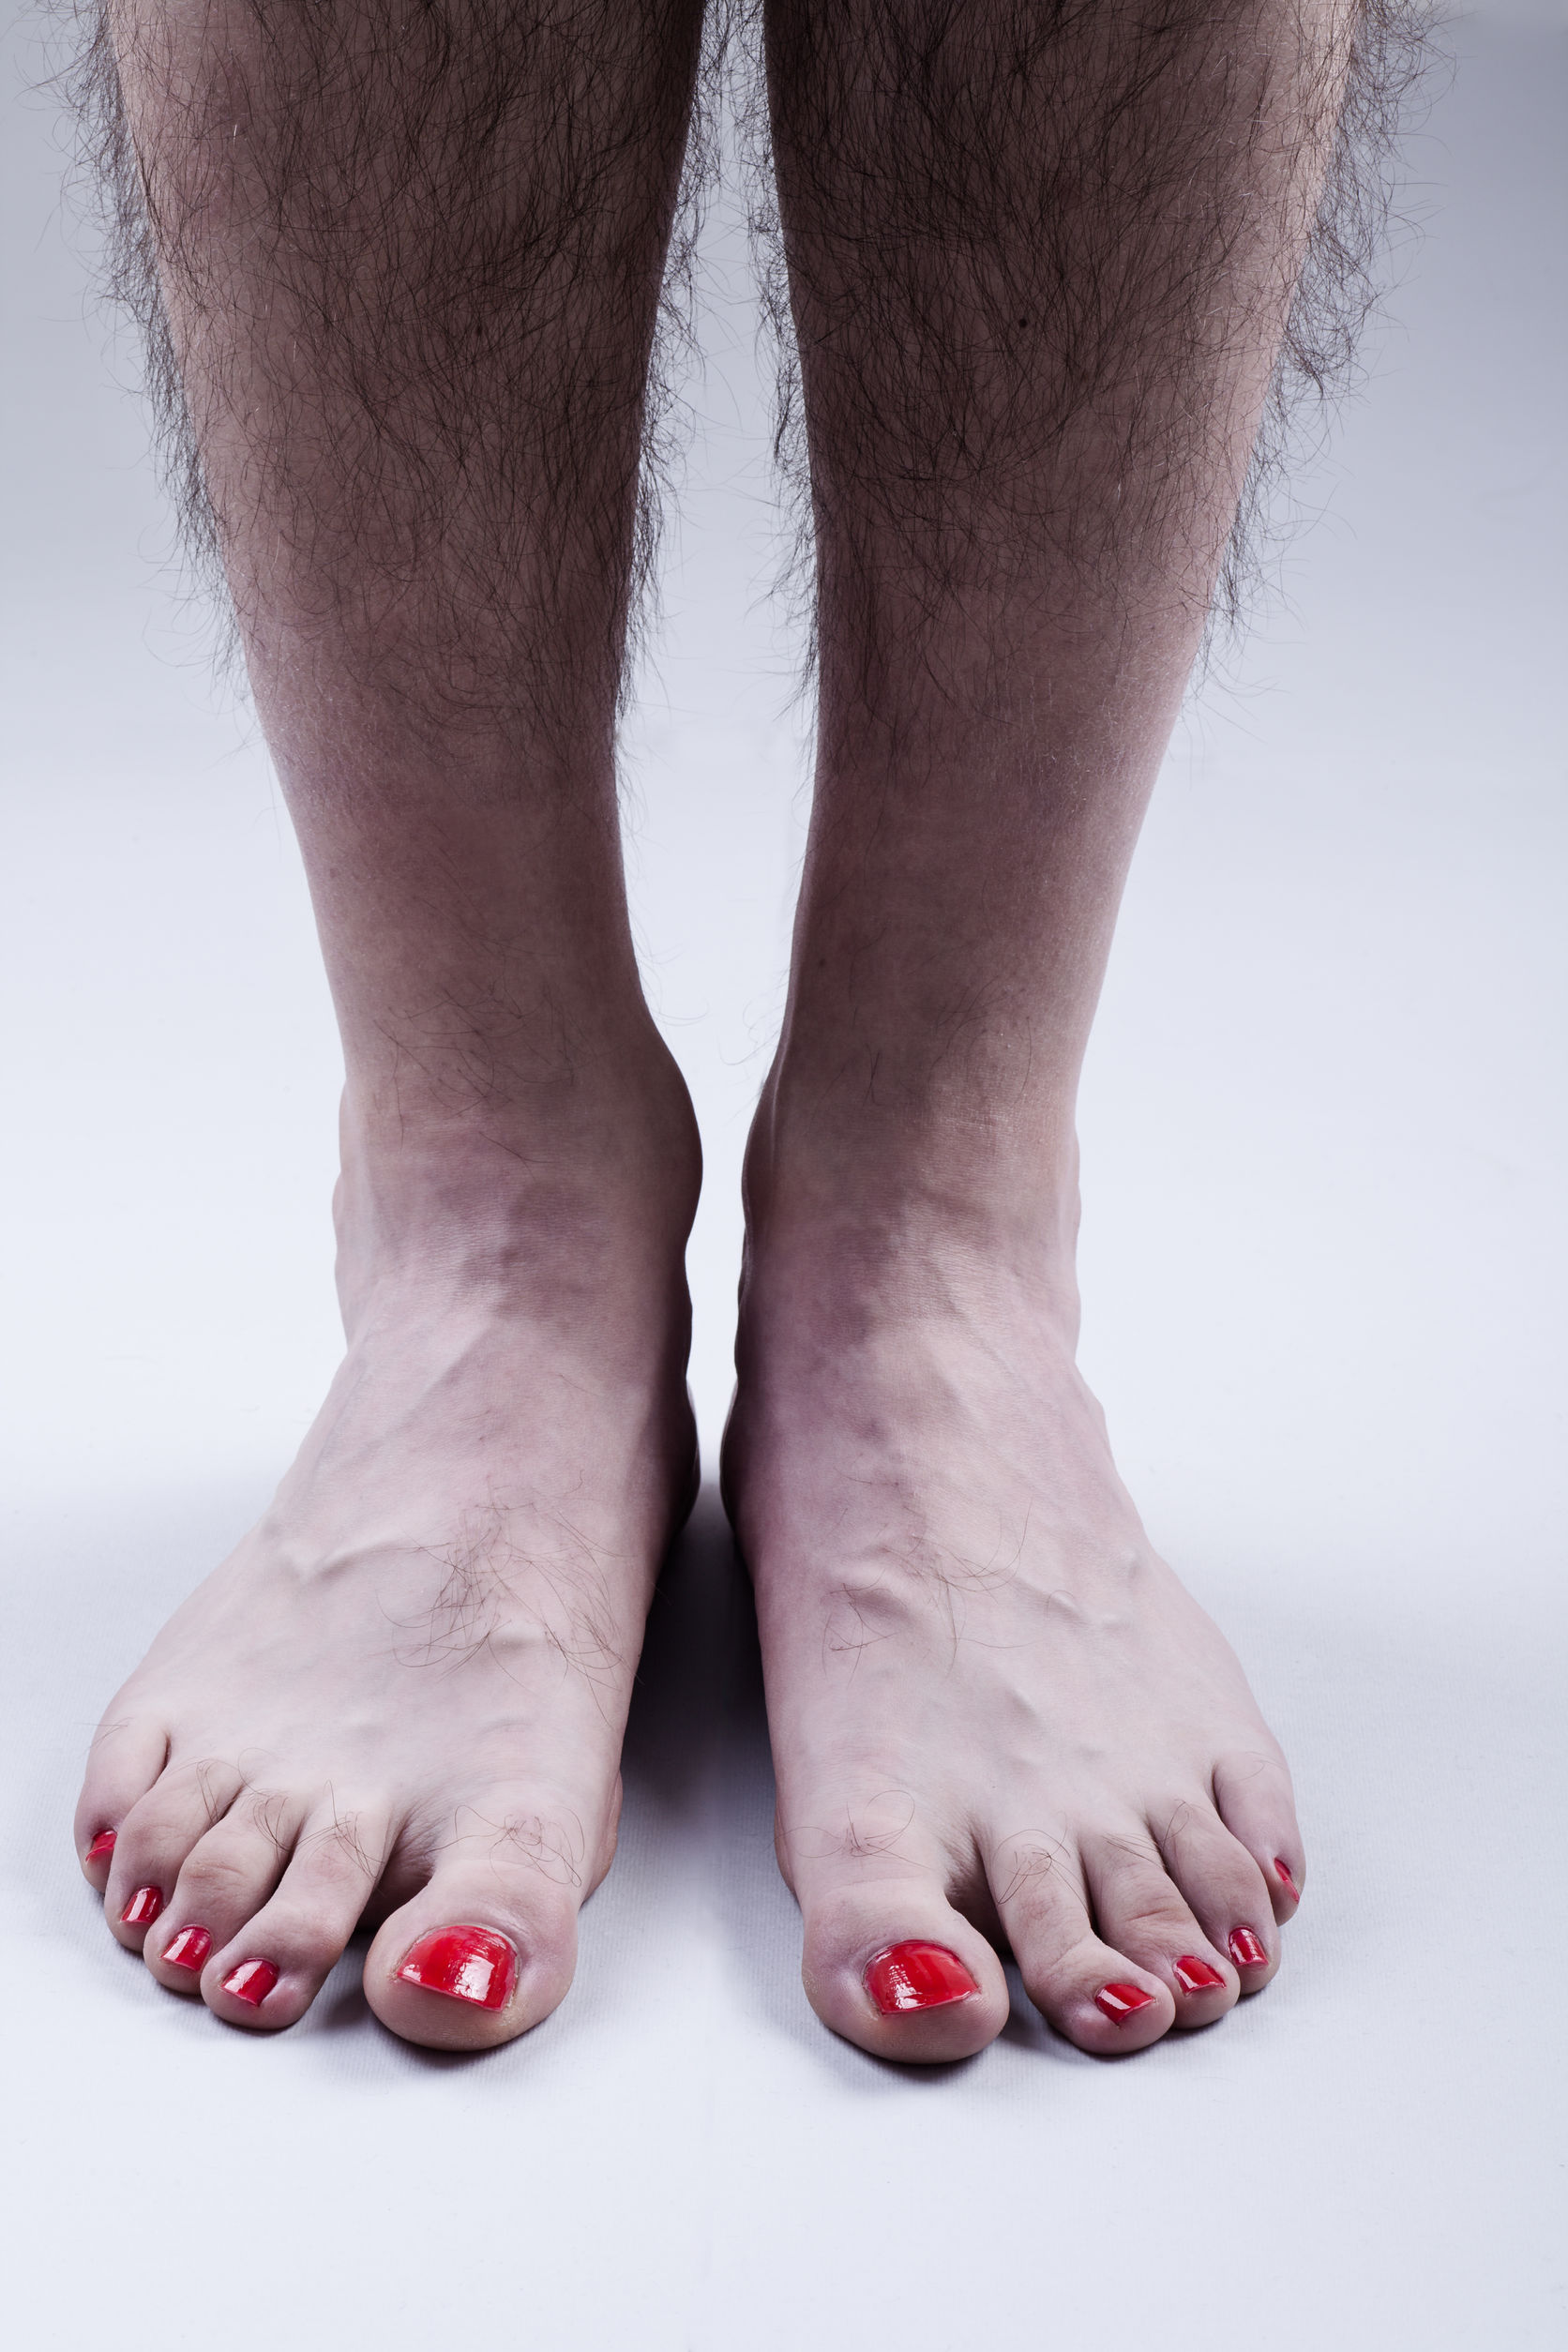 37878915 - man's feet with red nail polish and hairy legs on bright gray background